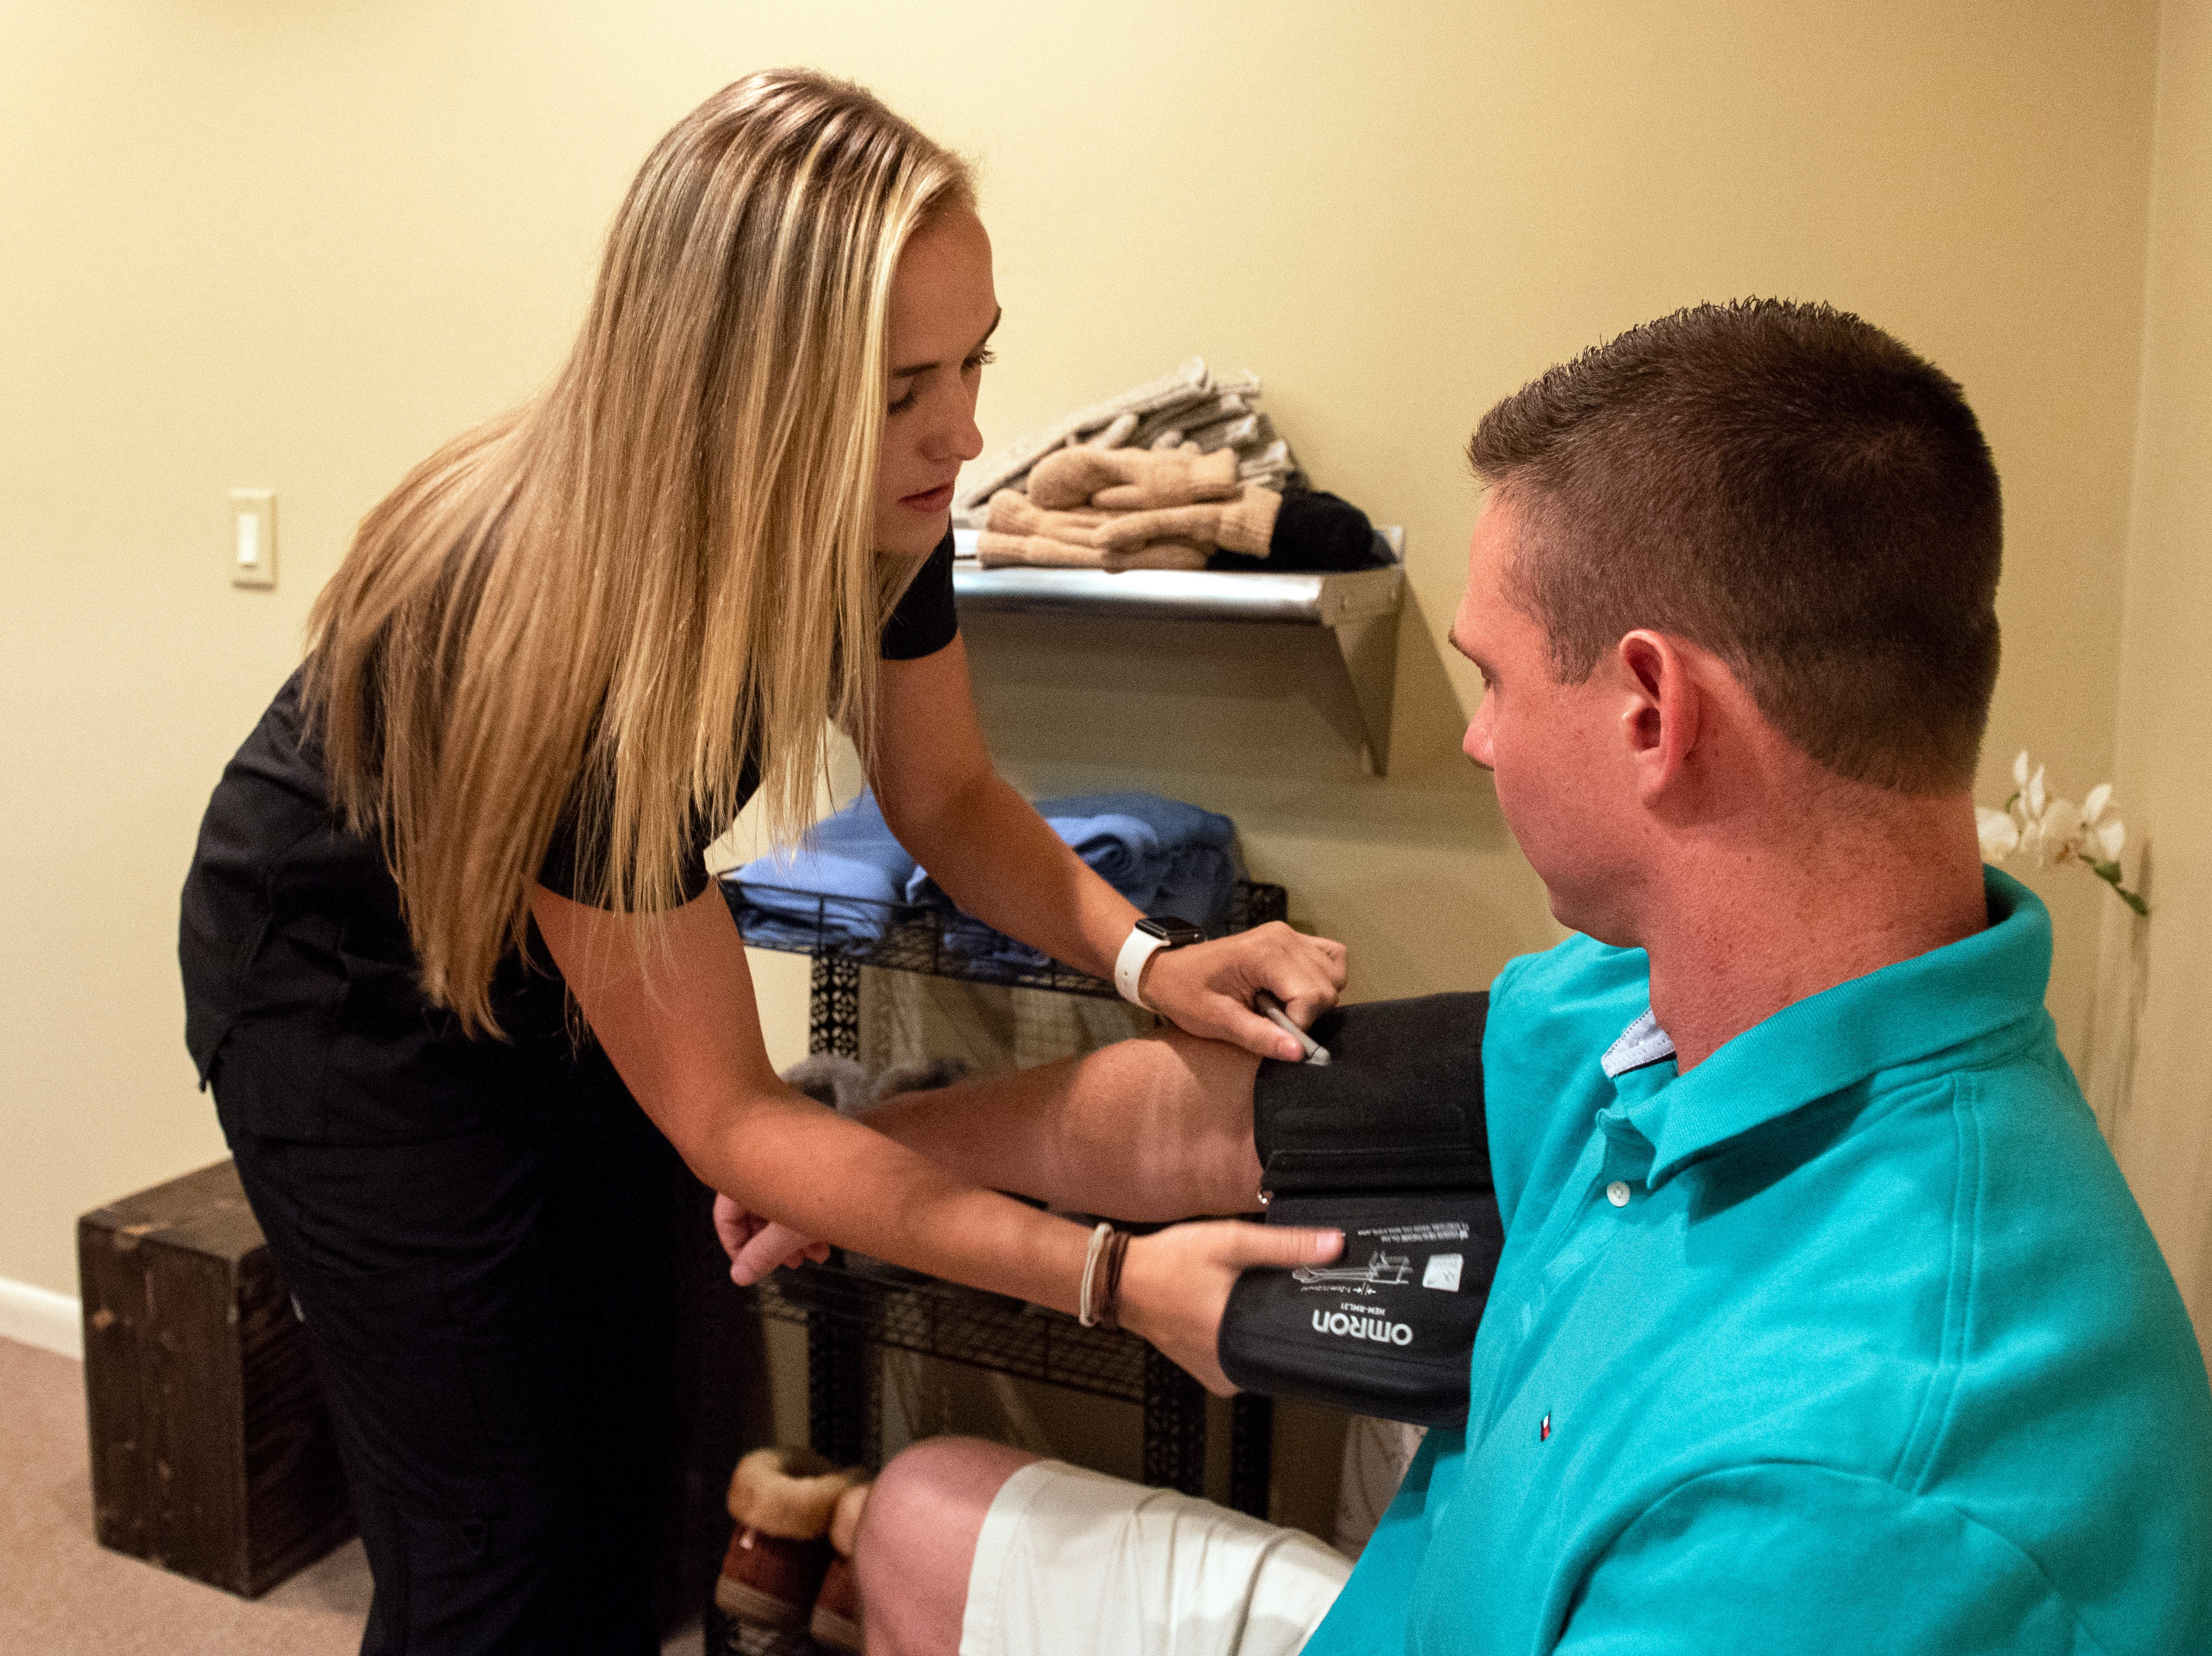 Cryotherapy technician Alison Shreiner, left, takes the blood pressure of YDR reporter John Buffone prior to getting in the cryotherapy chamber, Tuesday, Aug. 27, 2018. Cryotherapy is a treatment using liquid nitrogen gas in an enclosed chamber to surround a patientÕs body with freezing temperatures.